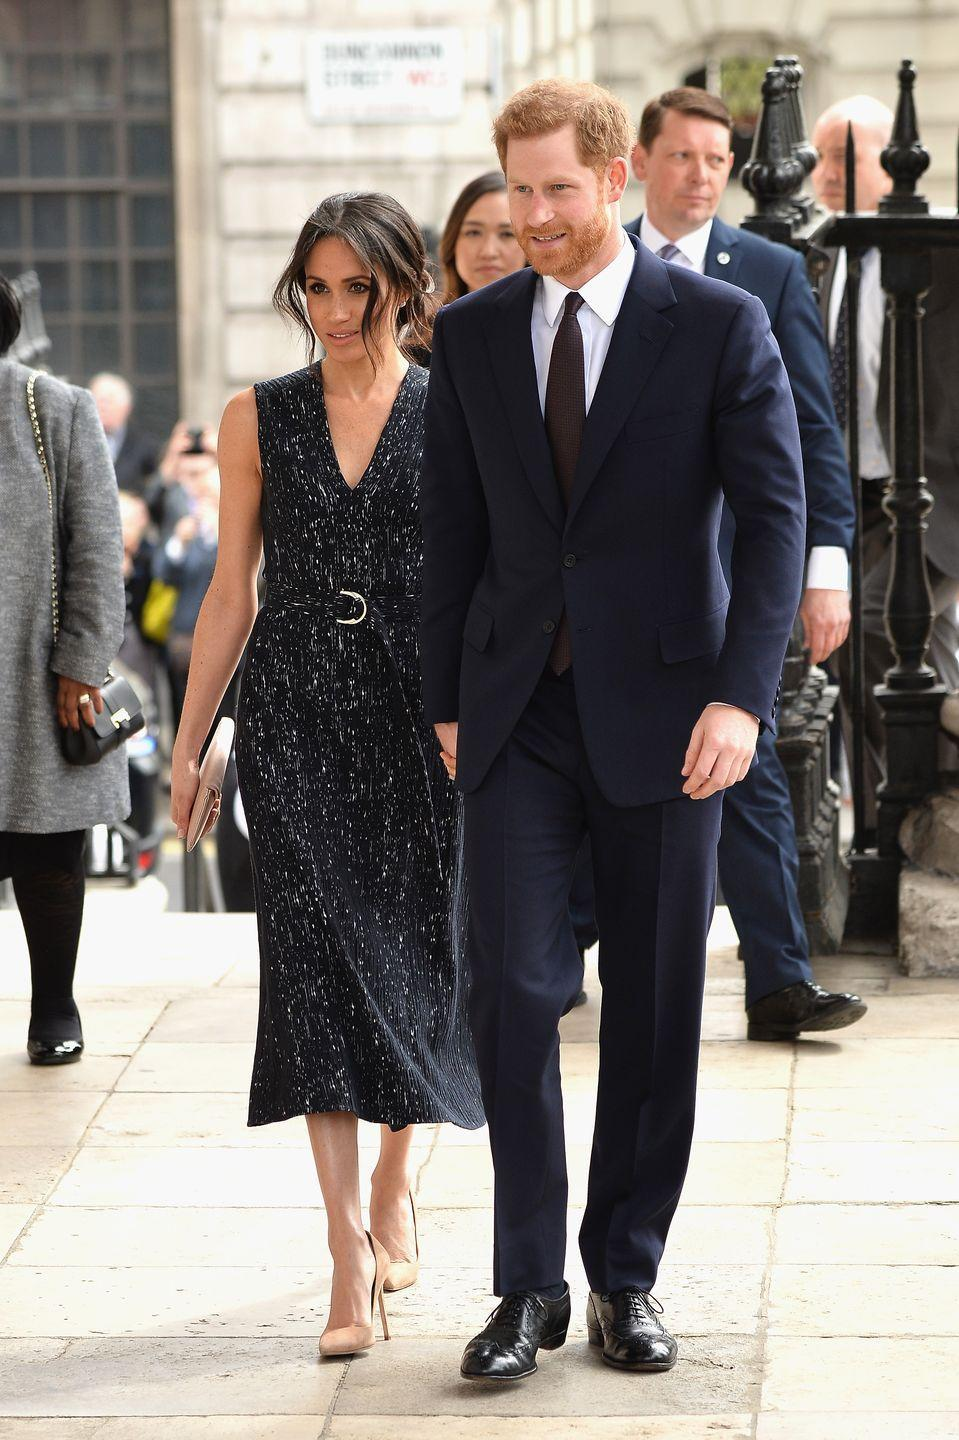 "<p>Meghan chose a black dress by Hugo Boss for a somber event in London: <a href=""https://www.townandcountrymag.com/society/tradition/a19889435/meghan-markle-black-dress-stephen-lawrence-memorial/"" rel=""nofollow noopener"" target=""_blank"" data-ylk=""slk:a memorial service to mark the 25th anniversary"" class=""link rapid-noclick-resp"">a memorial service to mark the 25th anniversary</a> of Stephen Lawrence's murder. The soon-to-be royal completed the look with a pair of Manolo Blahnik pumps. </p><p><a class=""link rapid-noclick-resp"" href=""https://go.redirectingat.com?id=74968X1596630&url=https%3A%2F%2Fwww.saksfifthavenue.com%2Fmain%2FProductDetail.jsp%3FPRODUCT%253C%253Eprd_id%3D845524446412984&sref=https%3A%2F%2Fwww.townandcountrymag.com%2Fstyle%2Ffashion-trends%2Fg3272%2Fmeghan-markle-preppy-style%2F"" rel=""nofollow noopener"" target=""_blank"" data-ylk=""slk:SHOP NOW"">SHOP NOW</a> <em>Manolo Blahnik BB 105 Suede Point Toe Pumps, $595</em><br></p>"